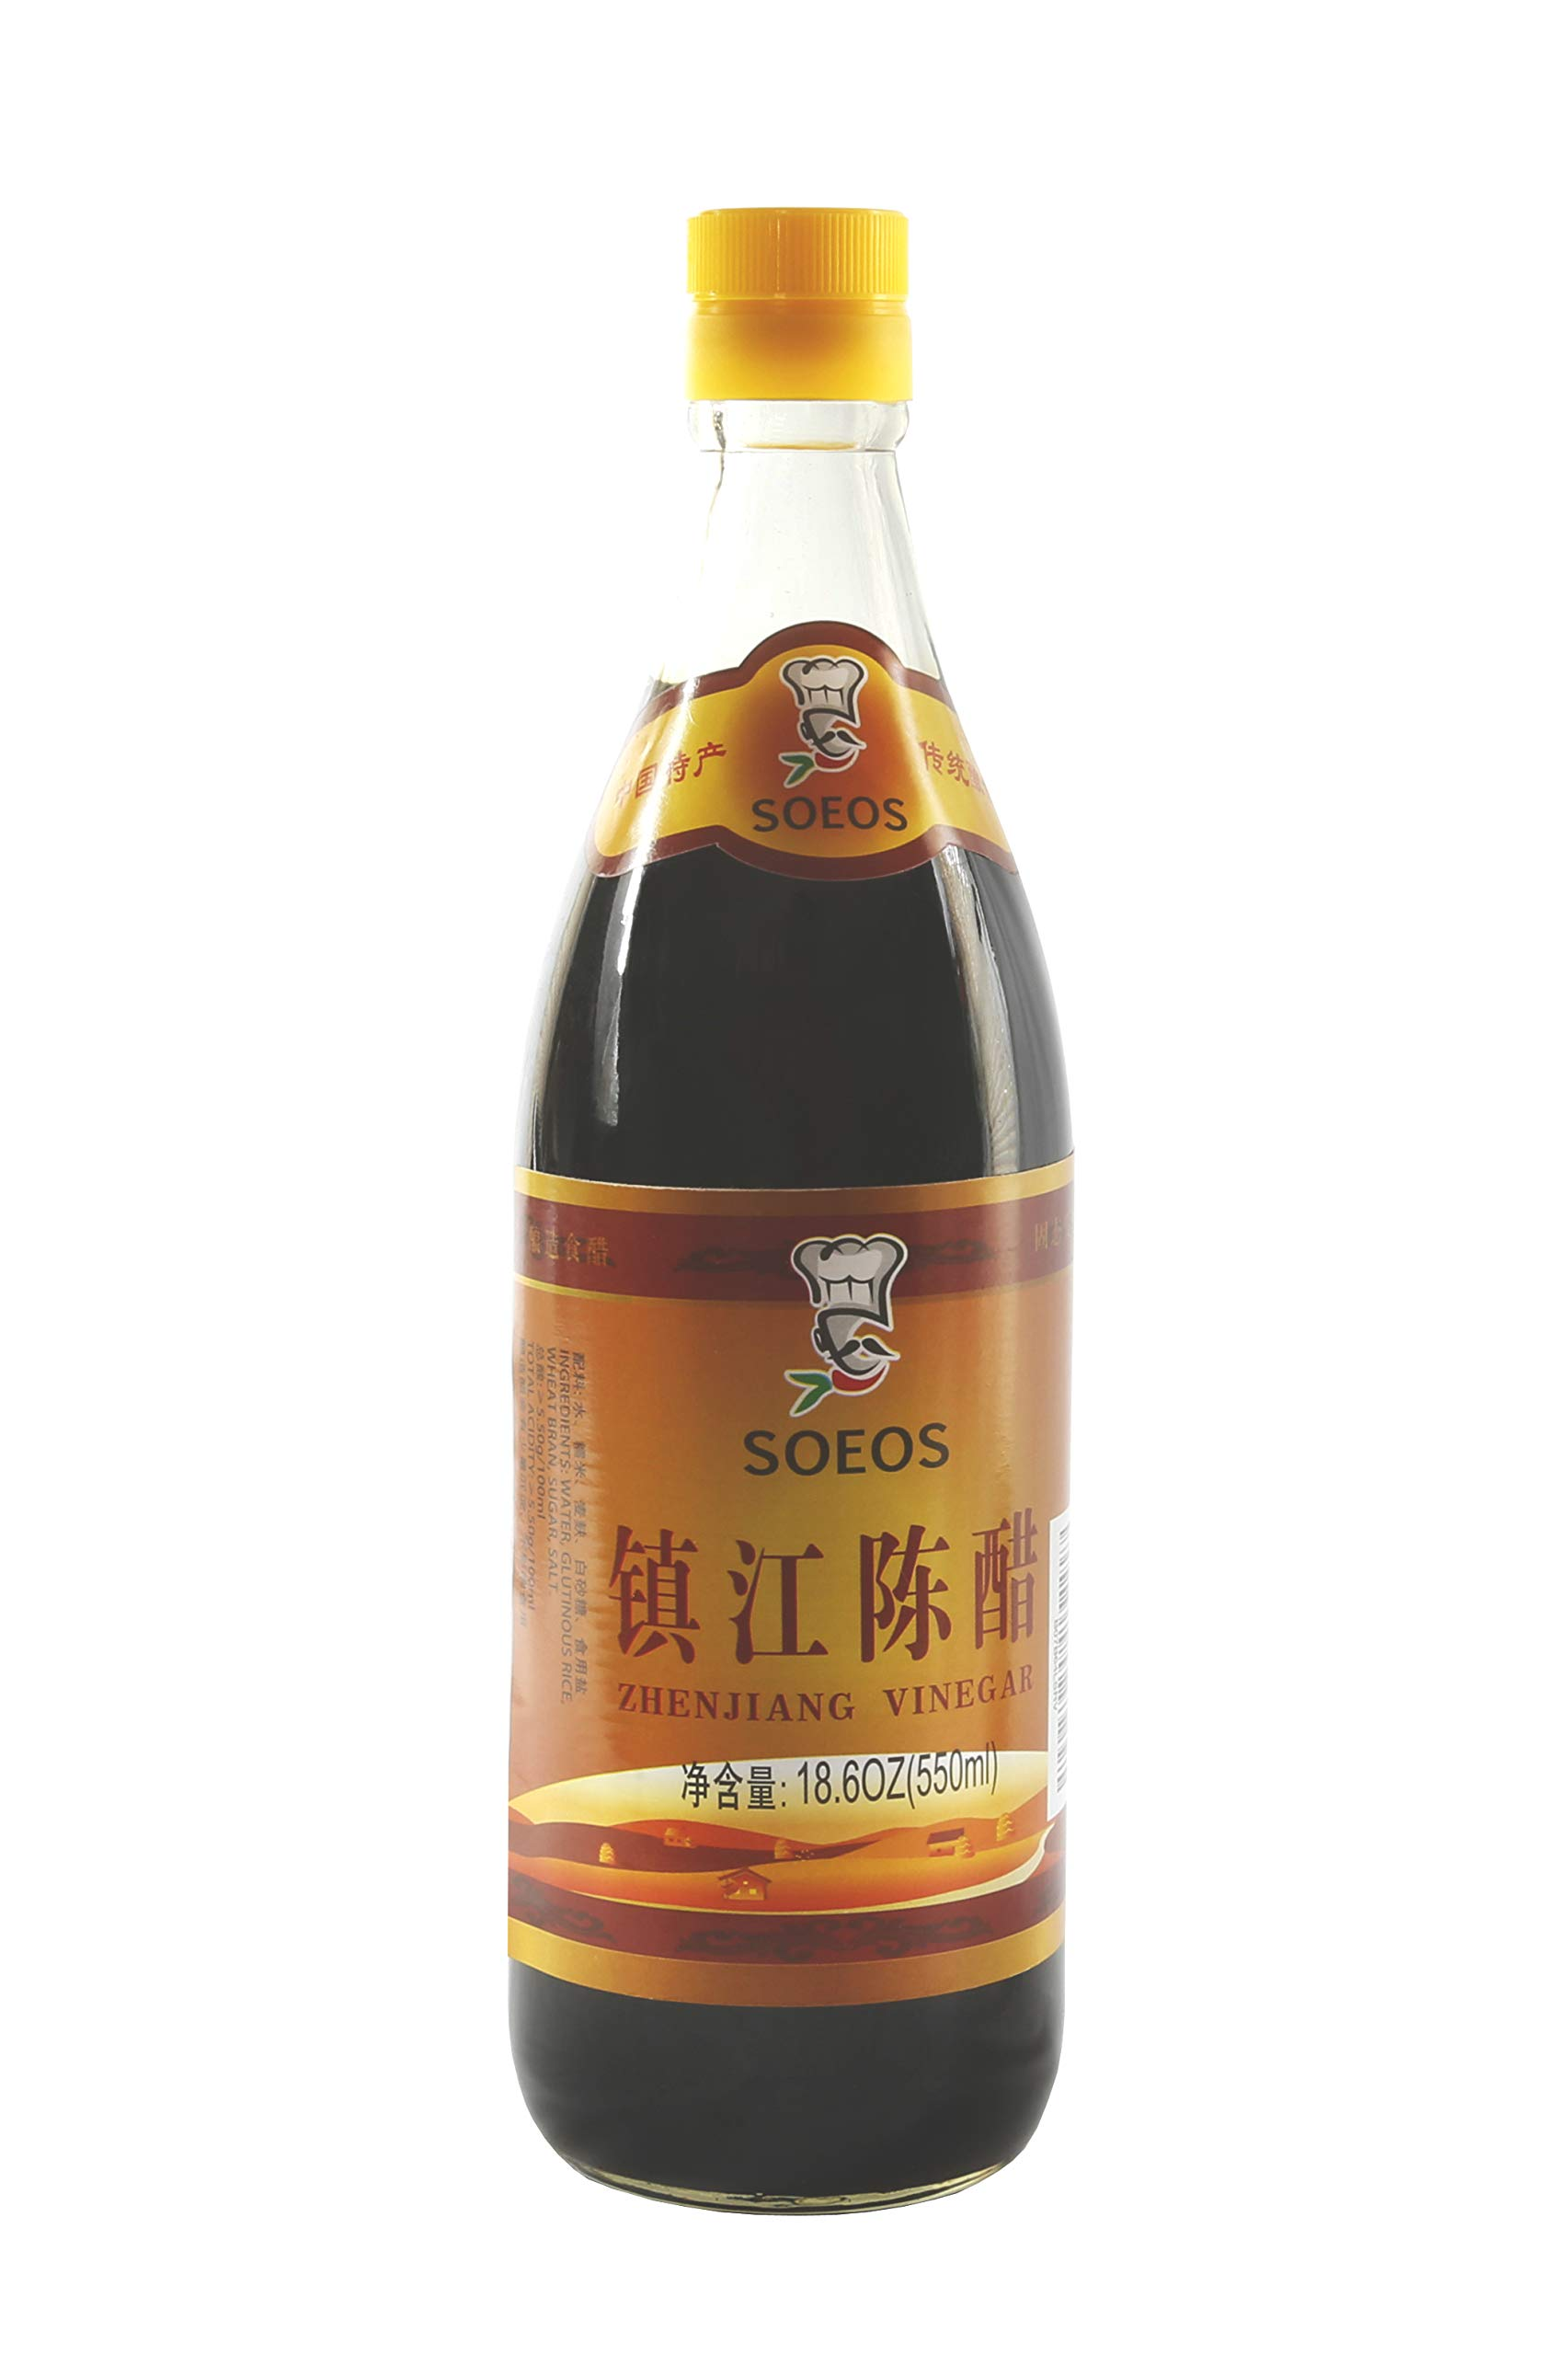 Soeos Chinkiang Vinegar, Mature Aged Black Vinegar, Chinese Black Vinegar, Zhenjiang Vinegar, 16.9 fl.